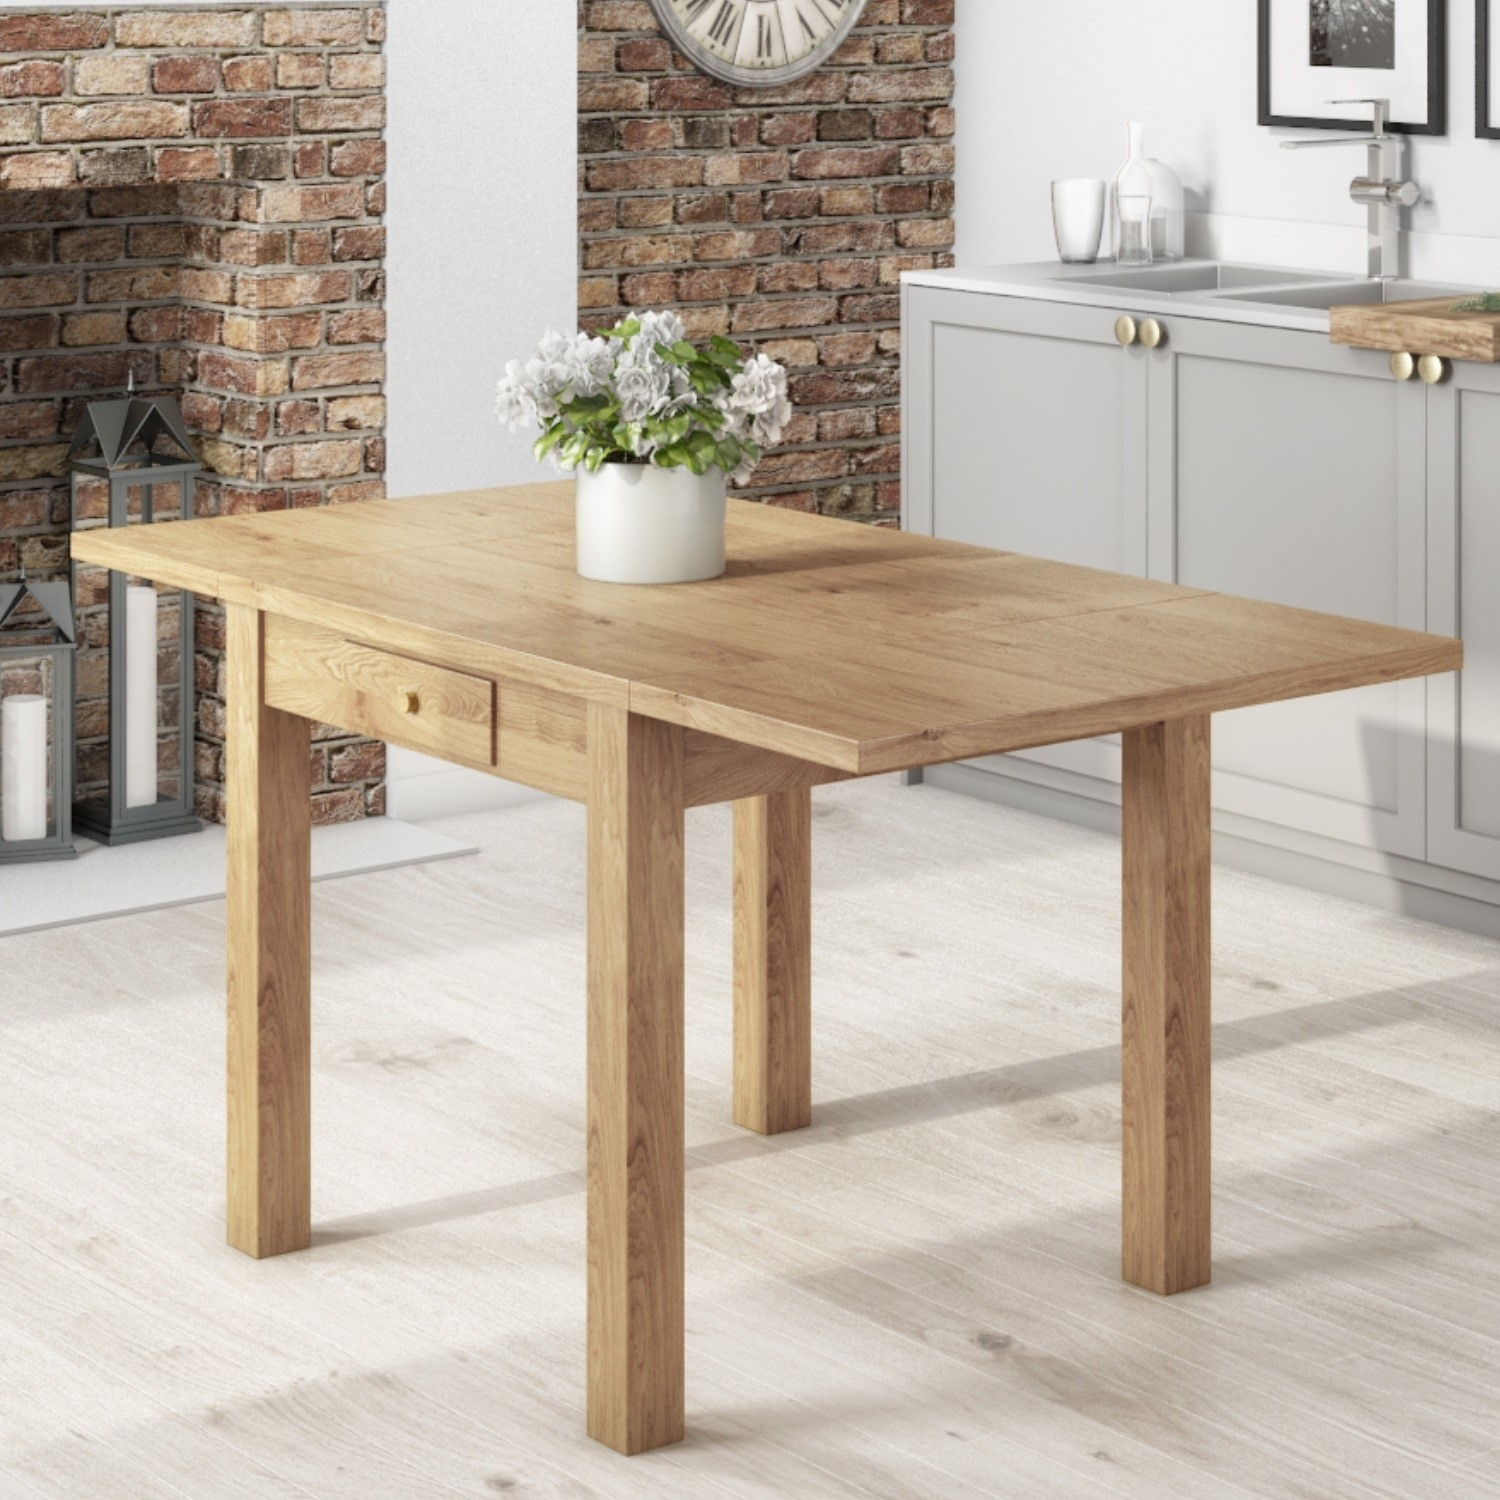 Emerson Extendable Solid Wood Drop Leaf Dining Table